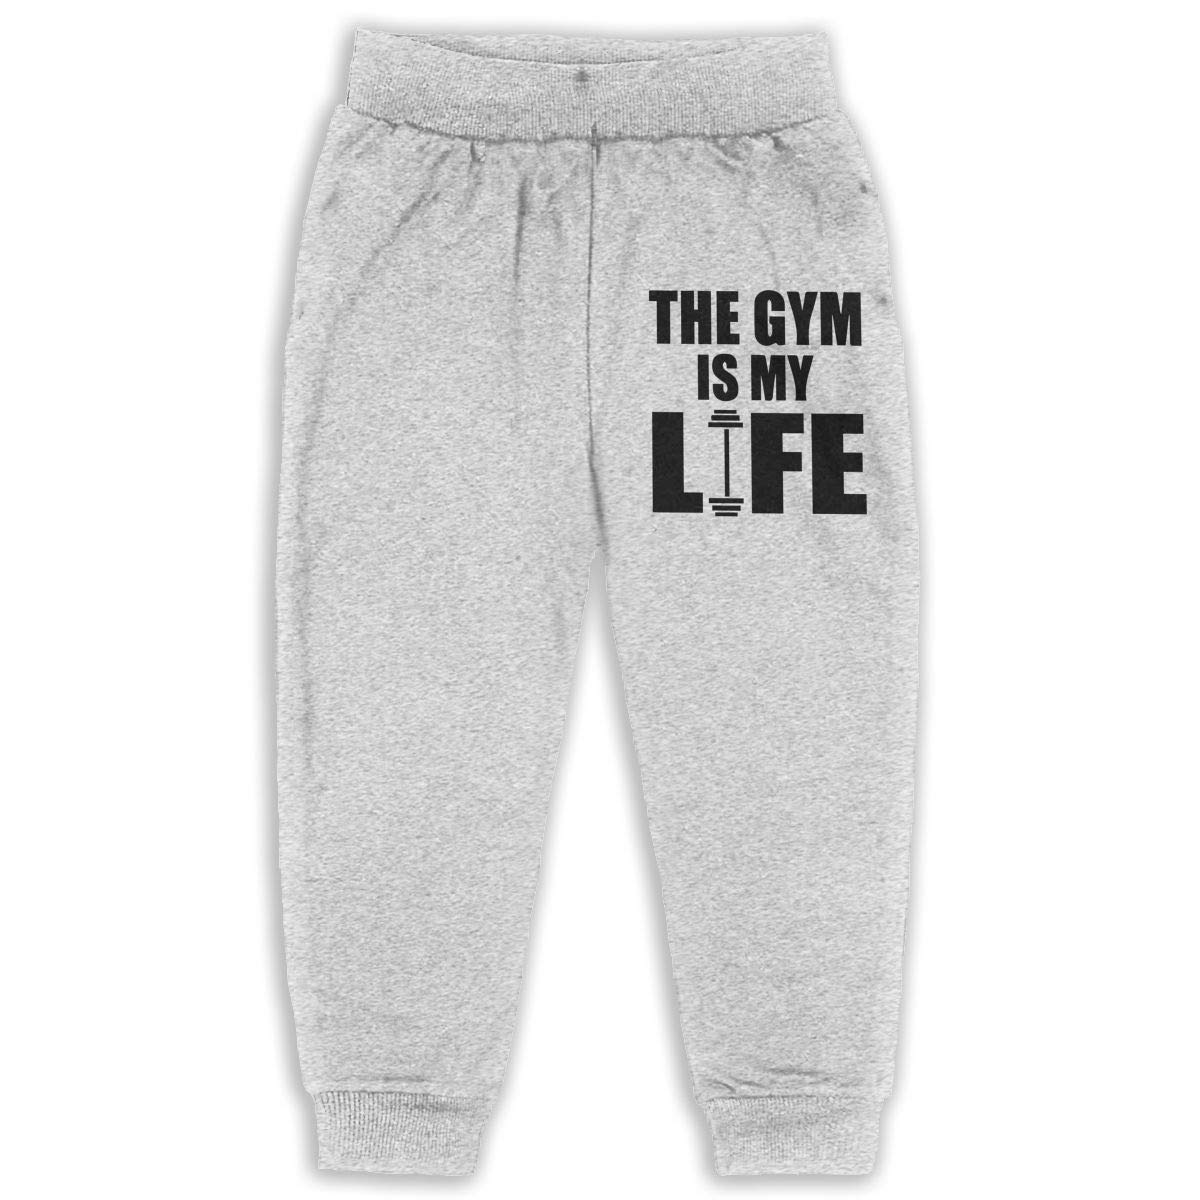 DaXi1 This Gym is My Life Sweatpants for Boys /& Girls Fleece Active Joggers Elastic Pants